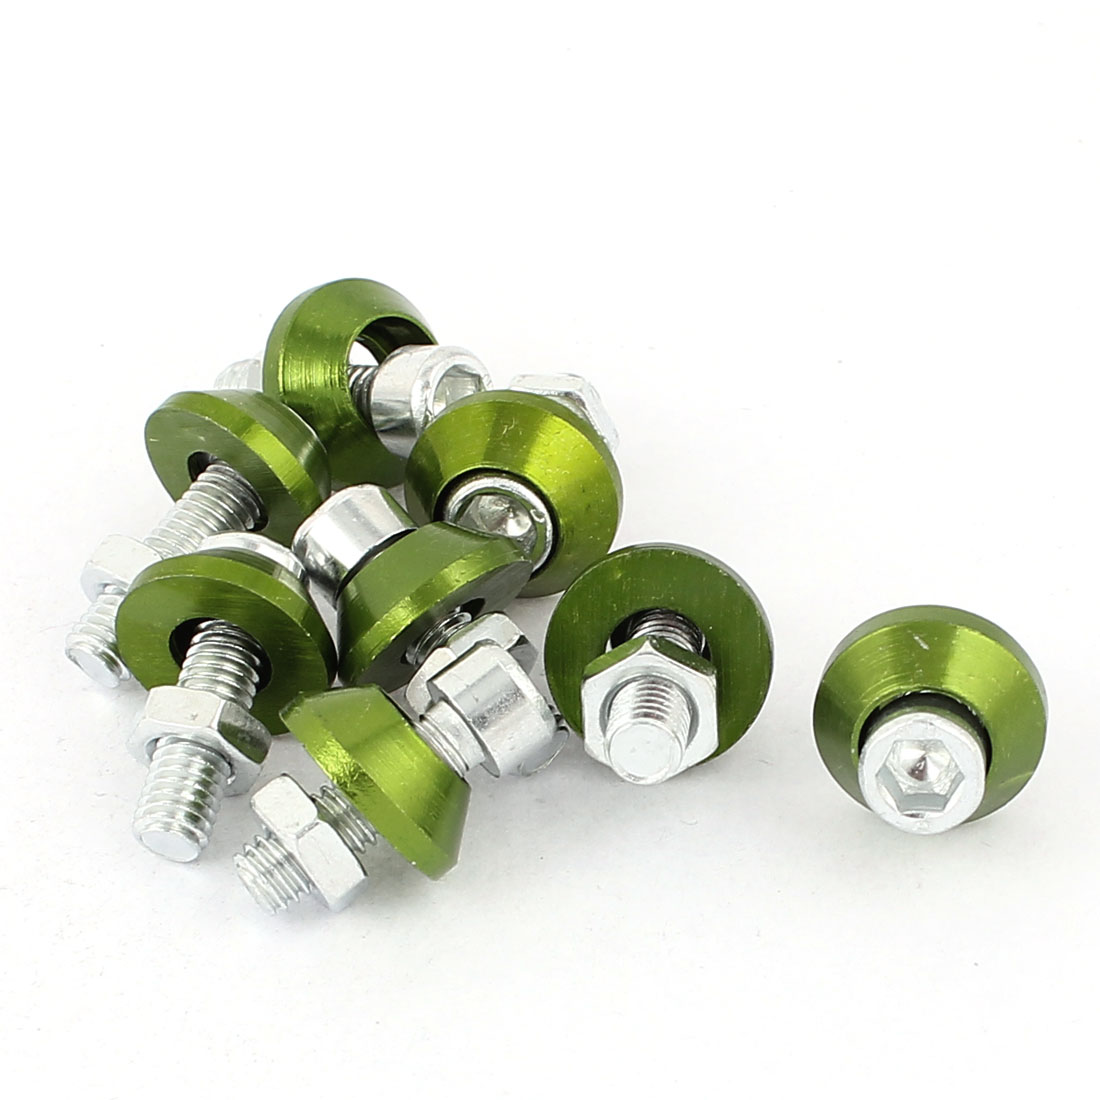 Car Motorcycle Aluminum Hex Head License Plate Bolts Screws Green 8pcs